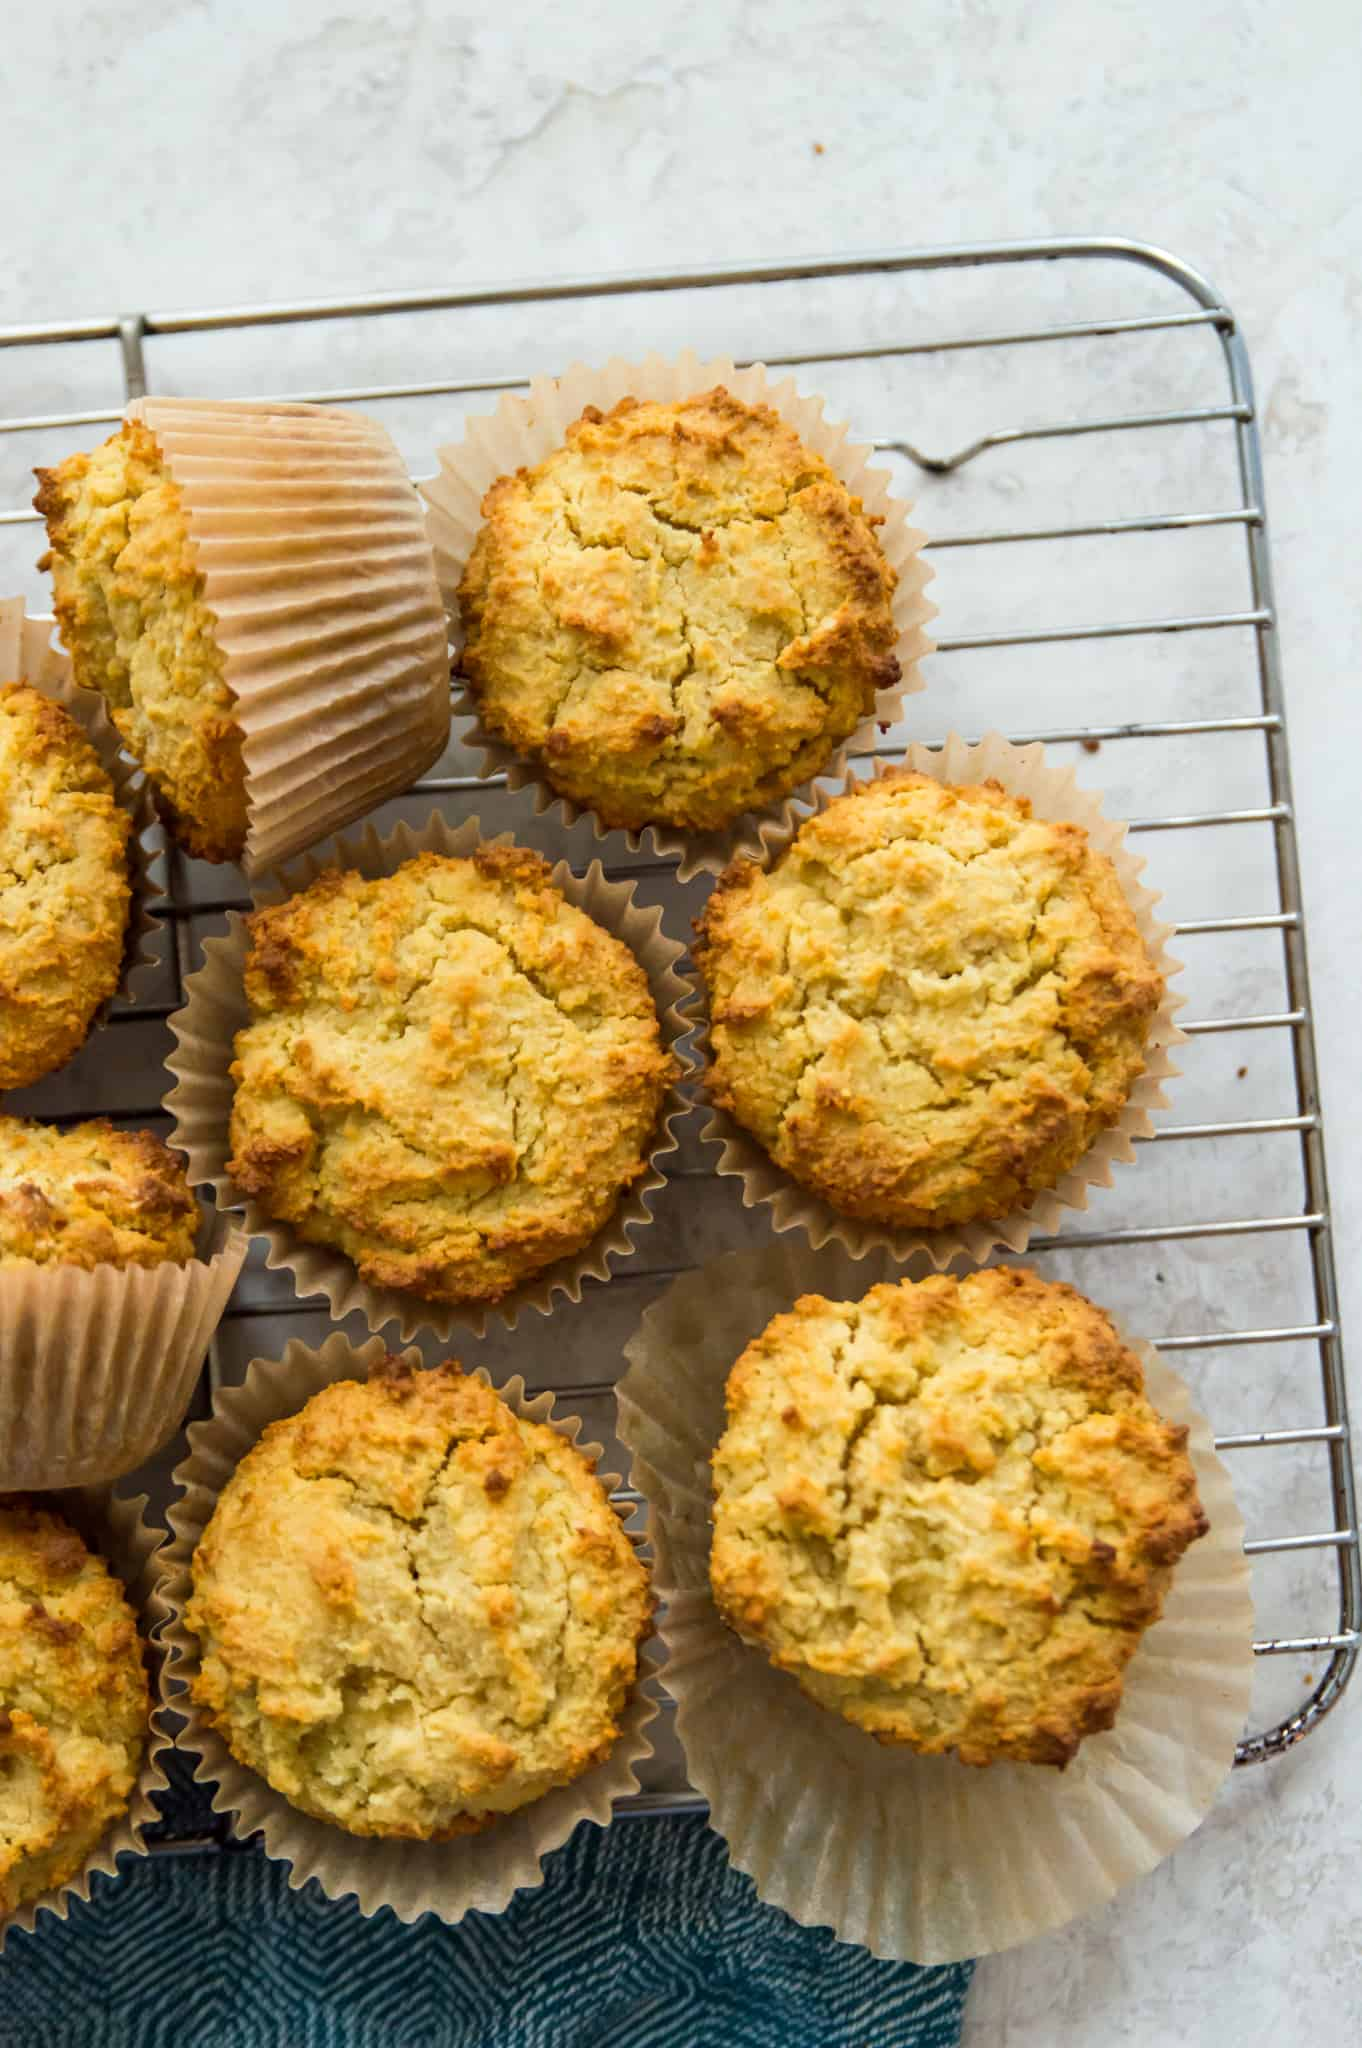 An overhead view of paleo cornbread muffins on a wire rack